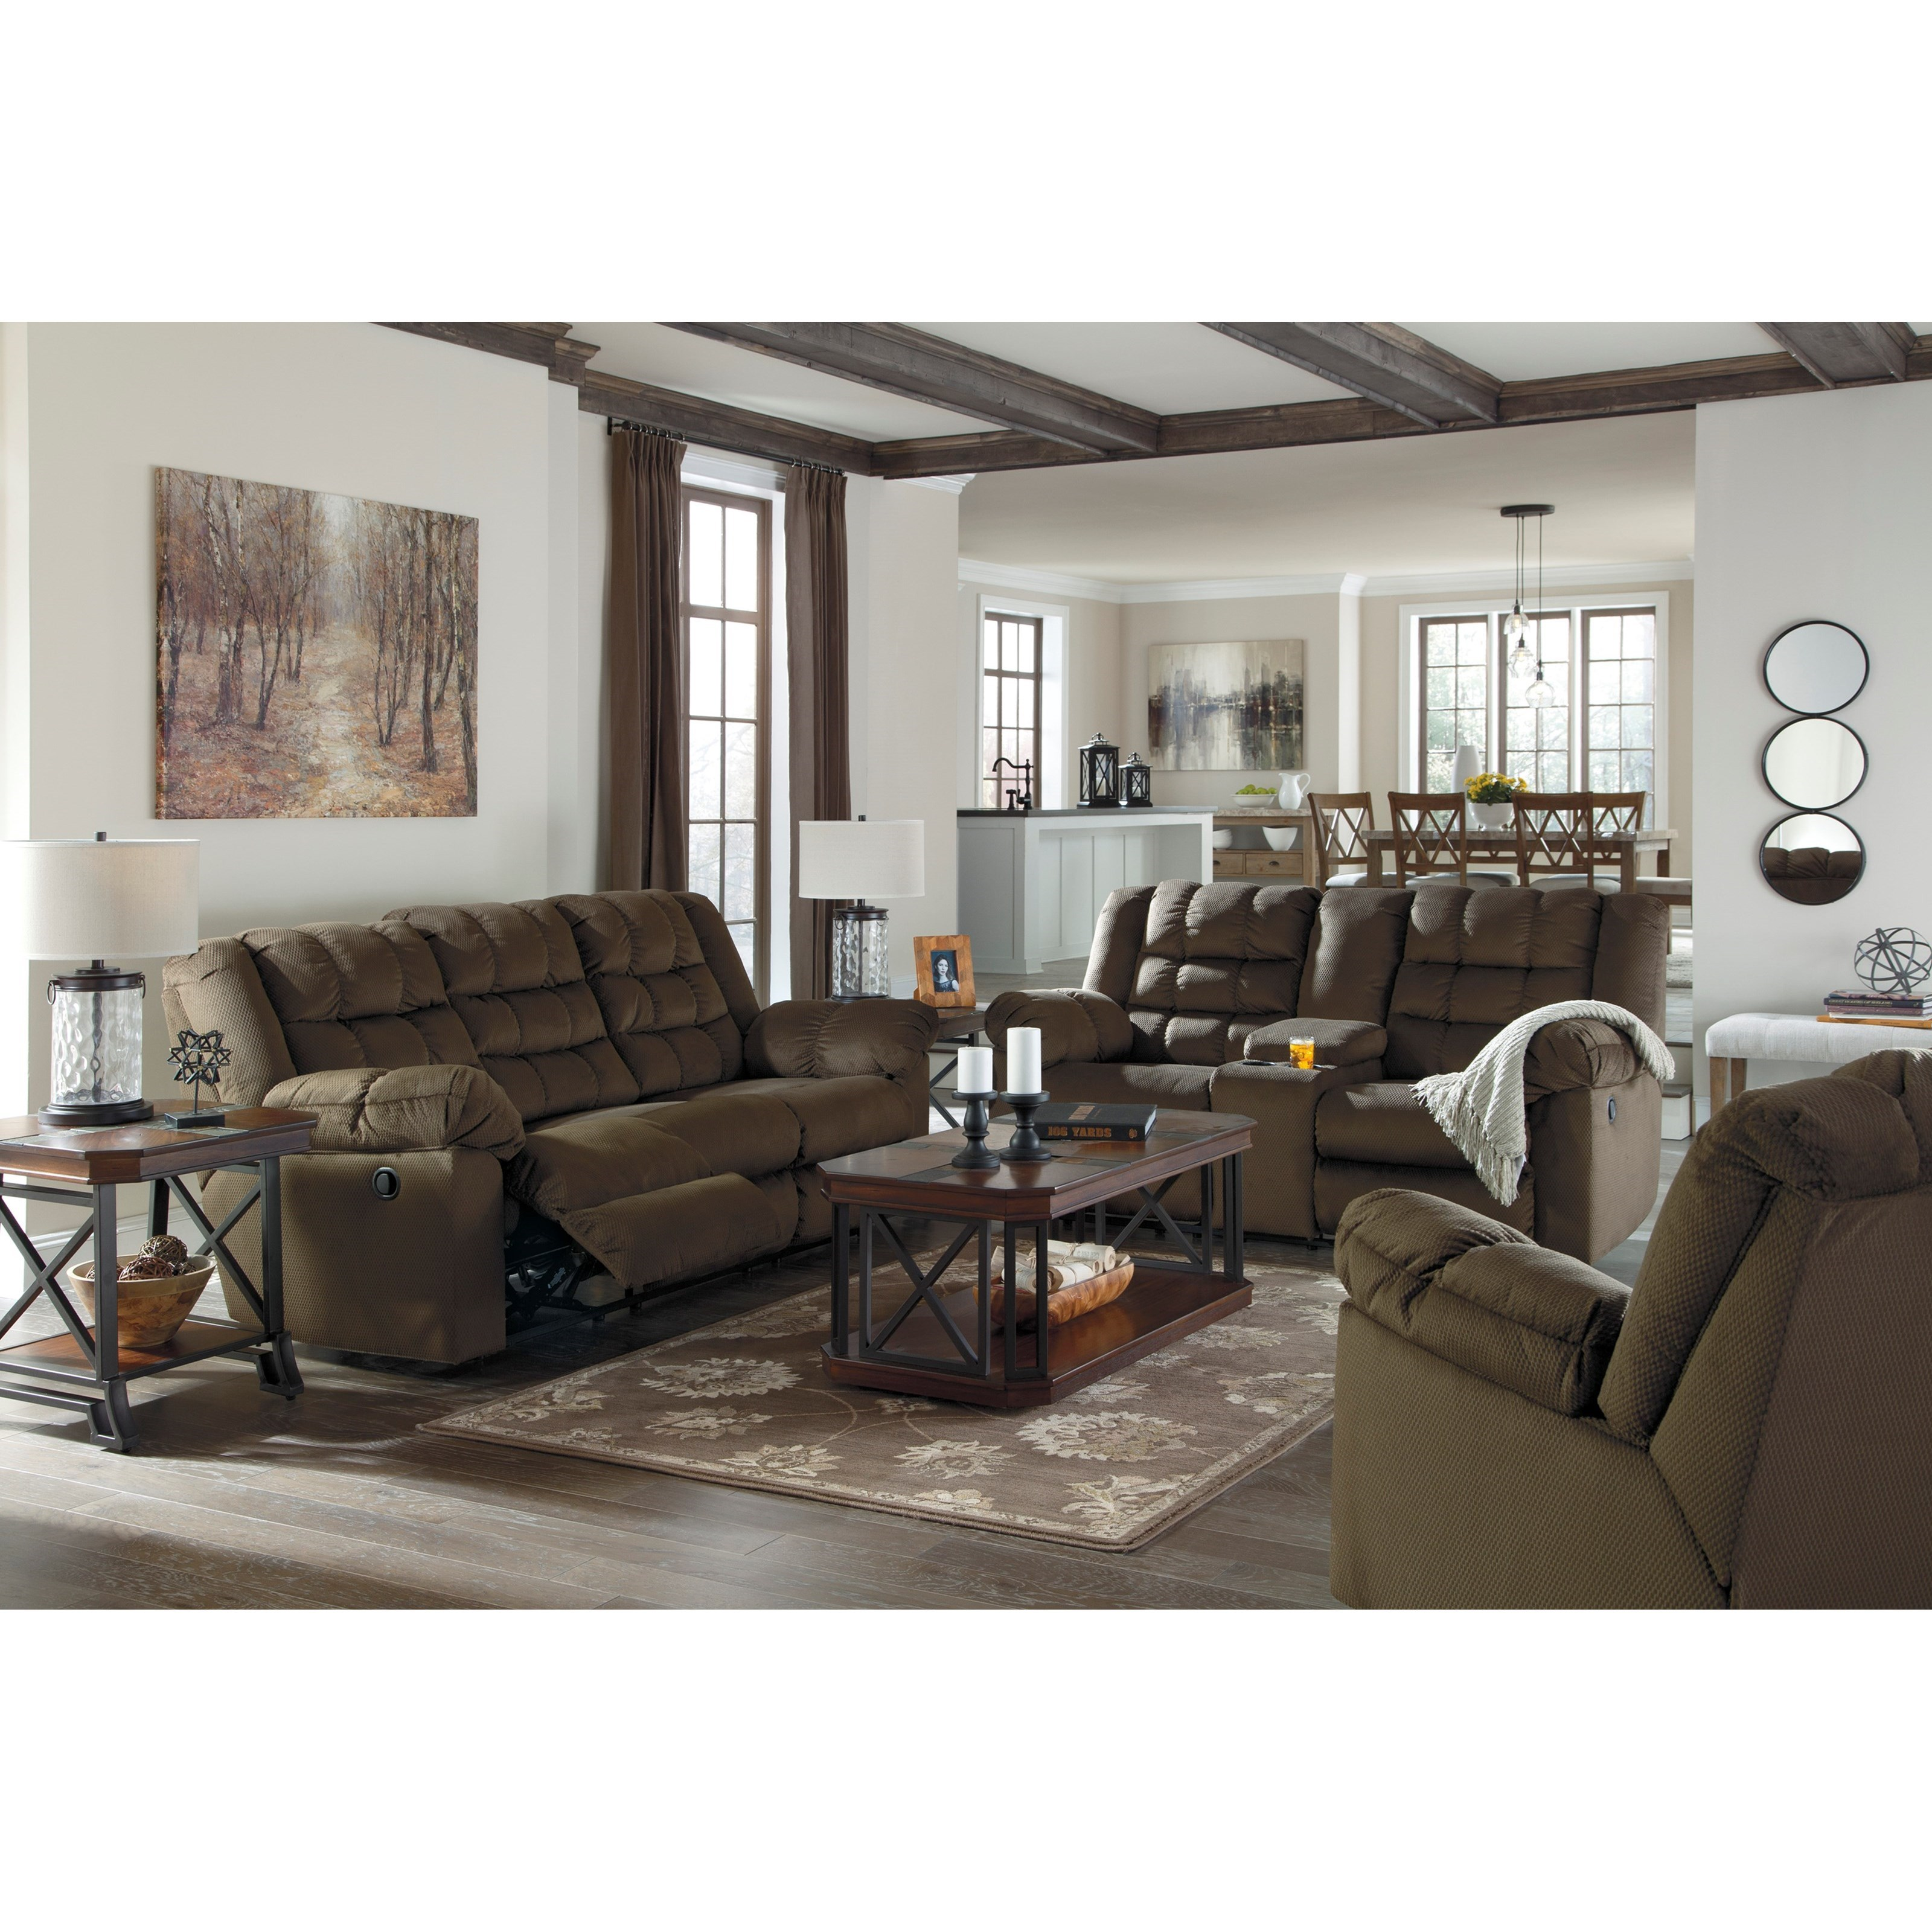 Styleline mort reclining living room group efo furniture outlet reclining living room group for Ashley wilkes bedroom collection